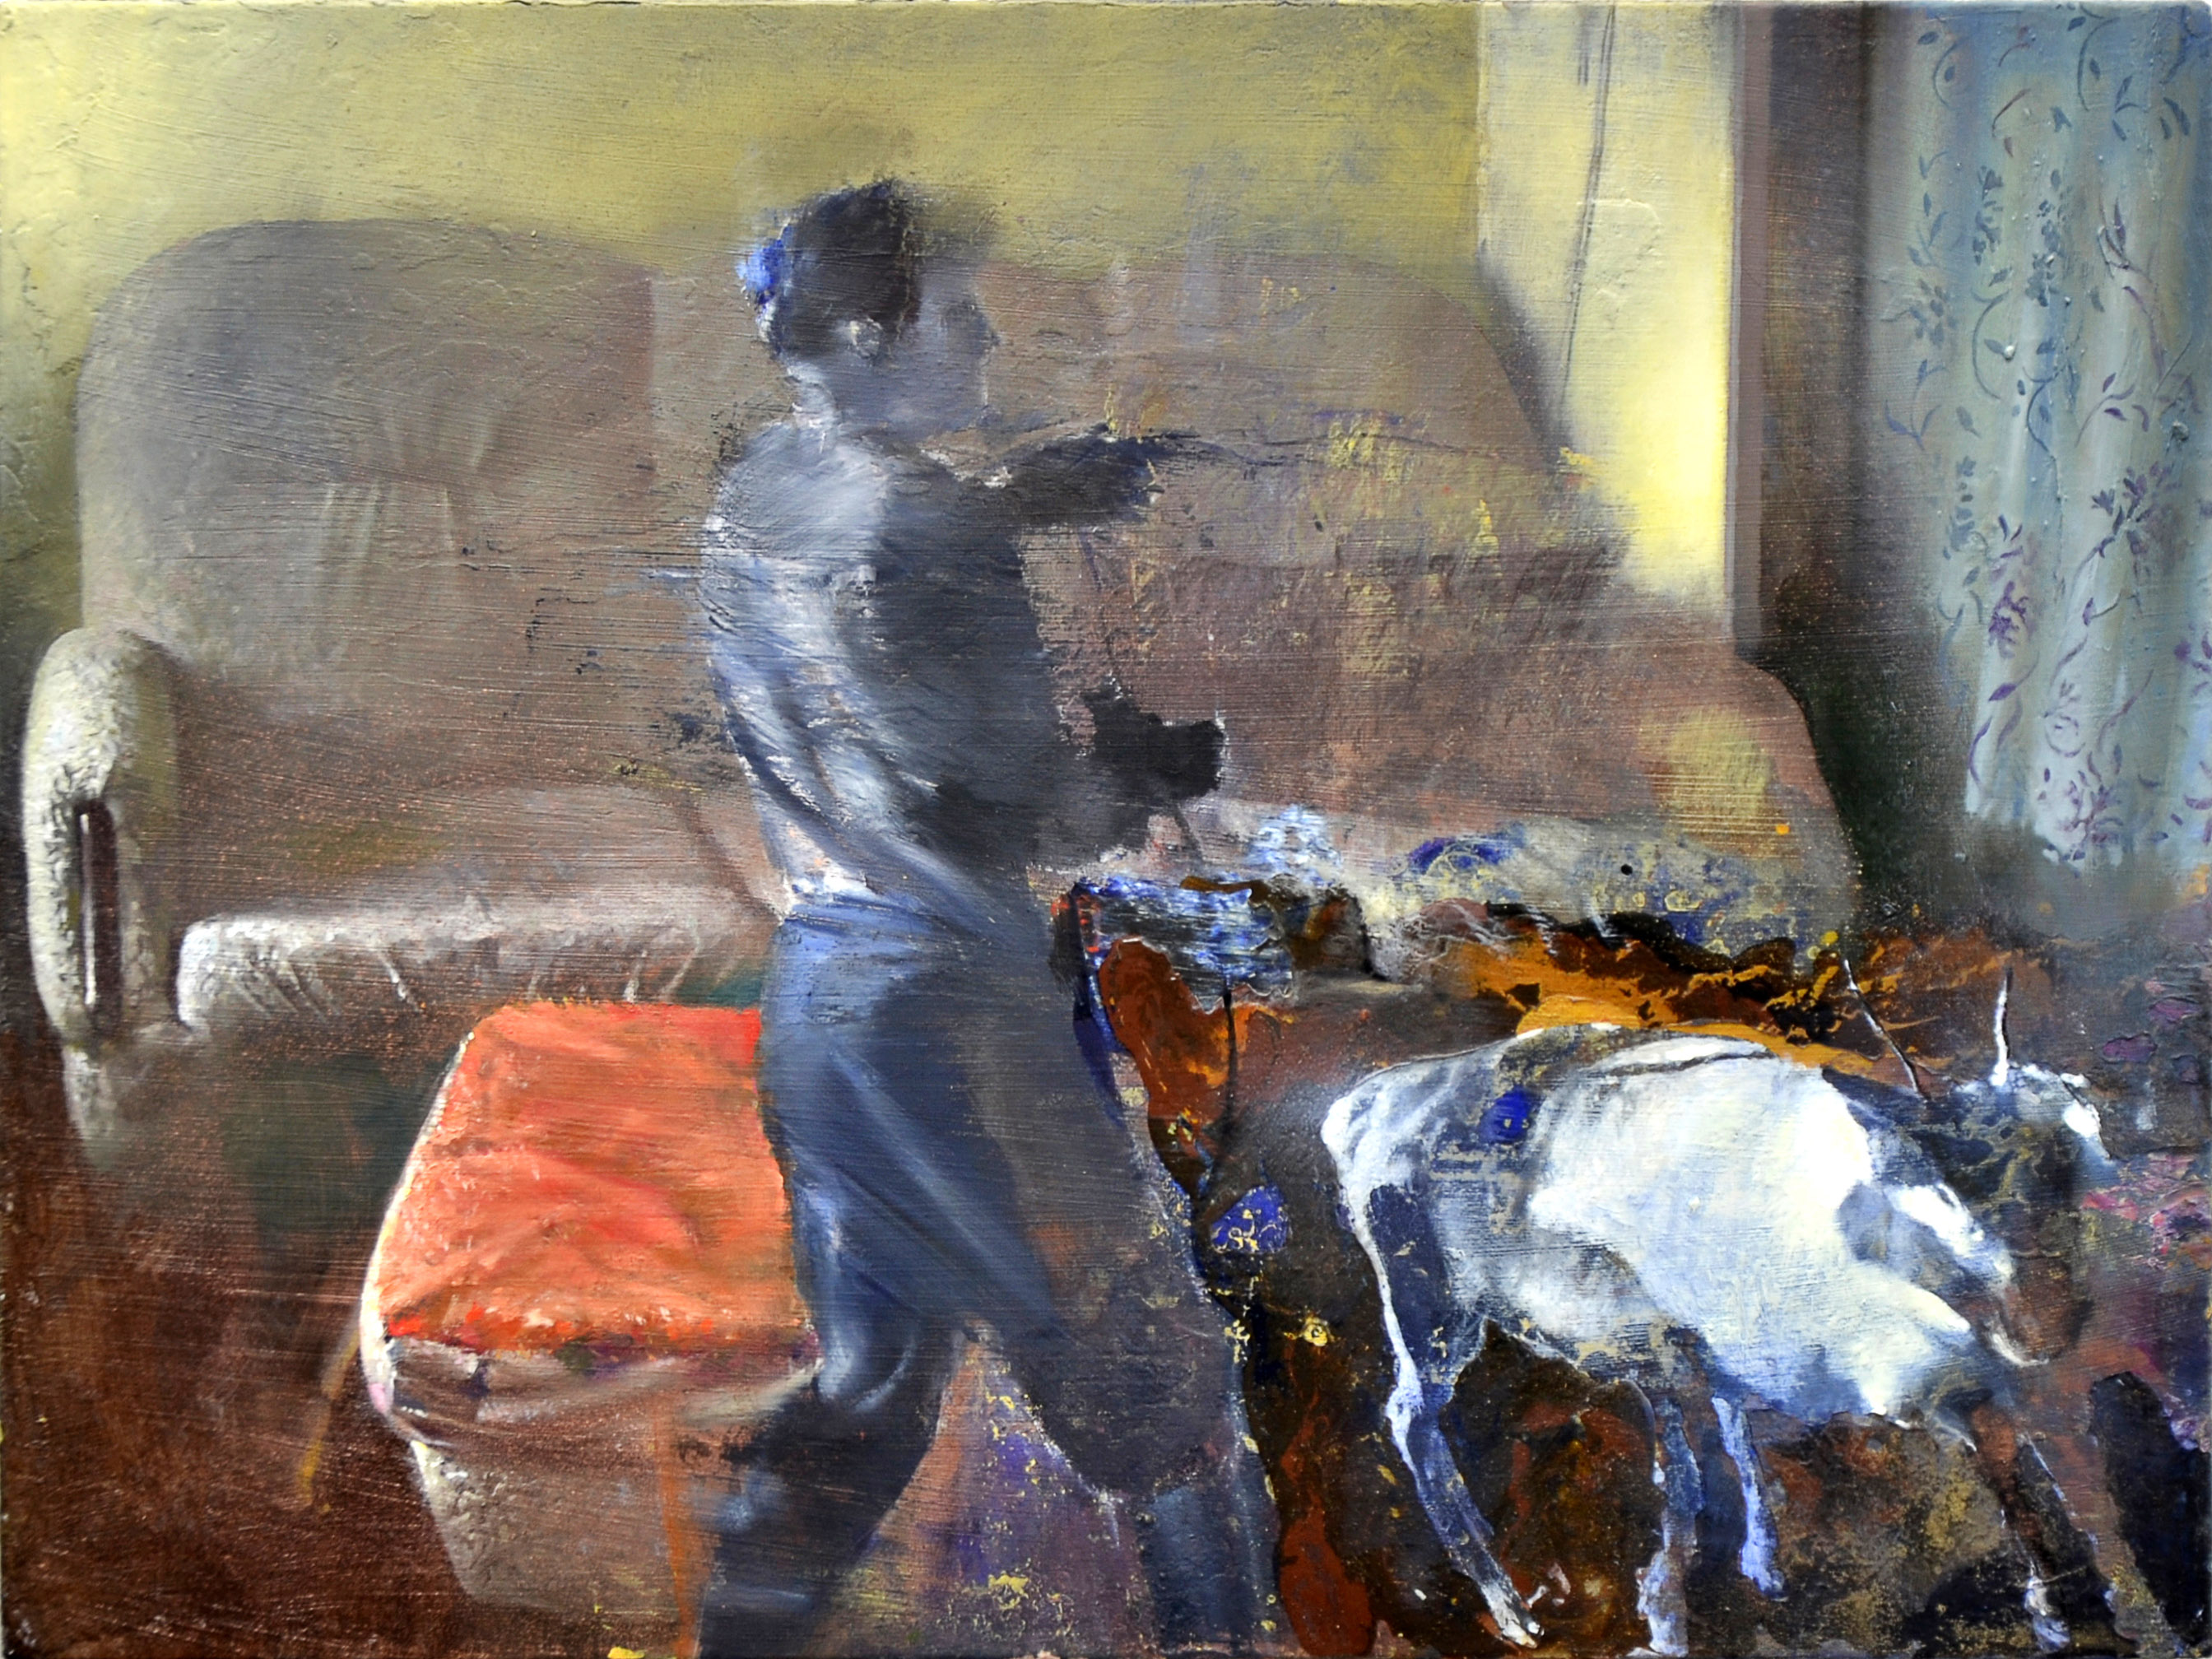 005.Living room, oil and acrylics on canvas, 20 x 30cm...